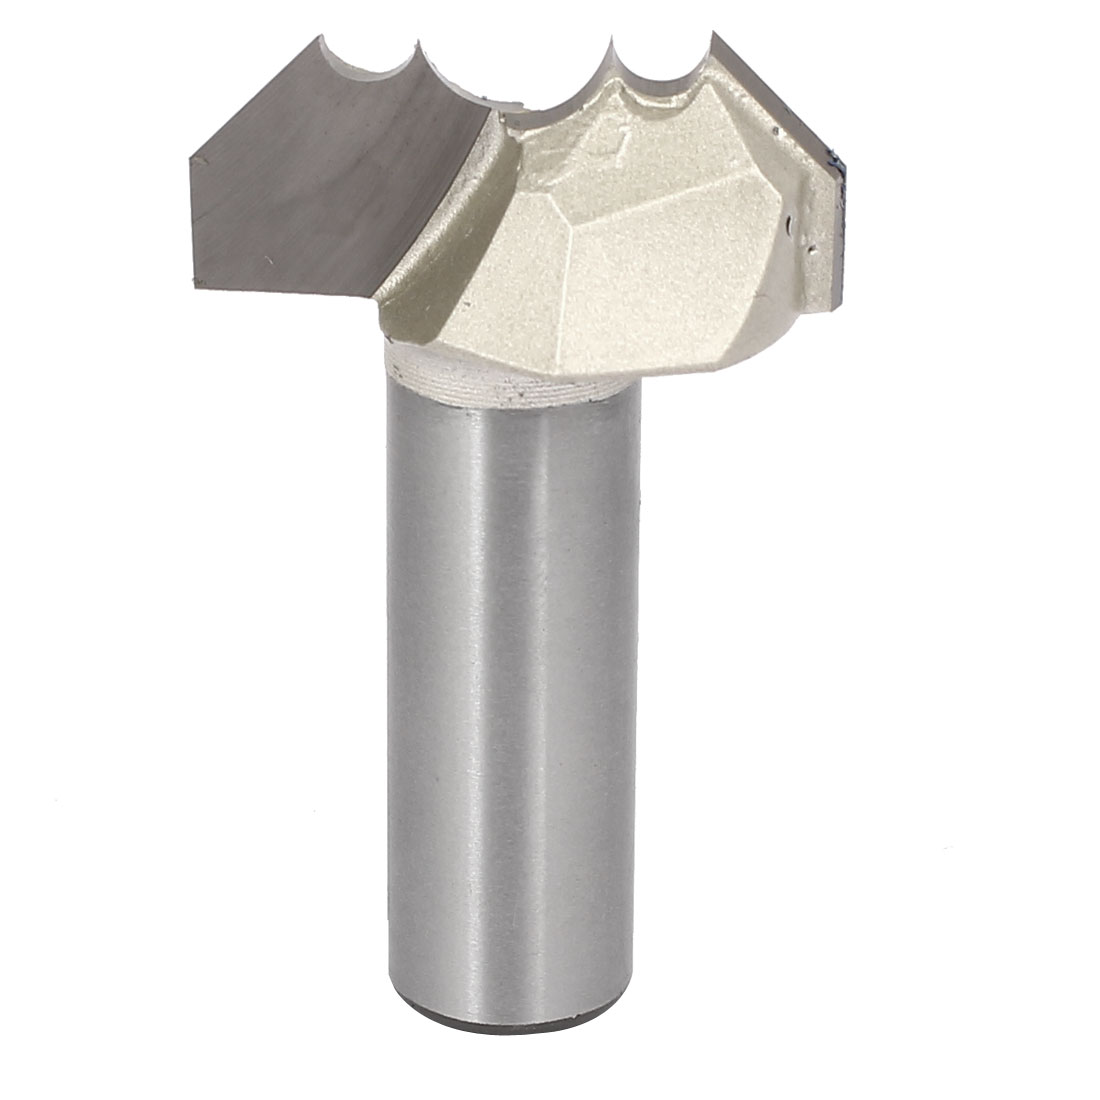 1/2-inch Round Shank 1-1/4-inch Cutting Dia Double Dargon Ball Router Bit Cutter Tool